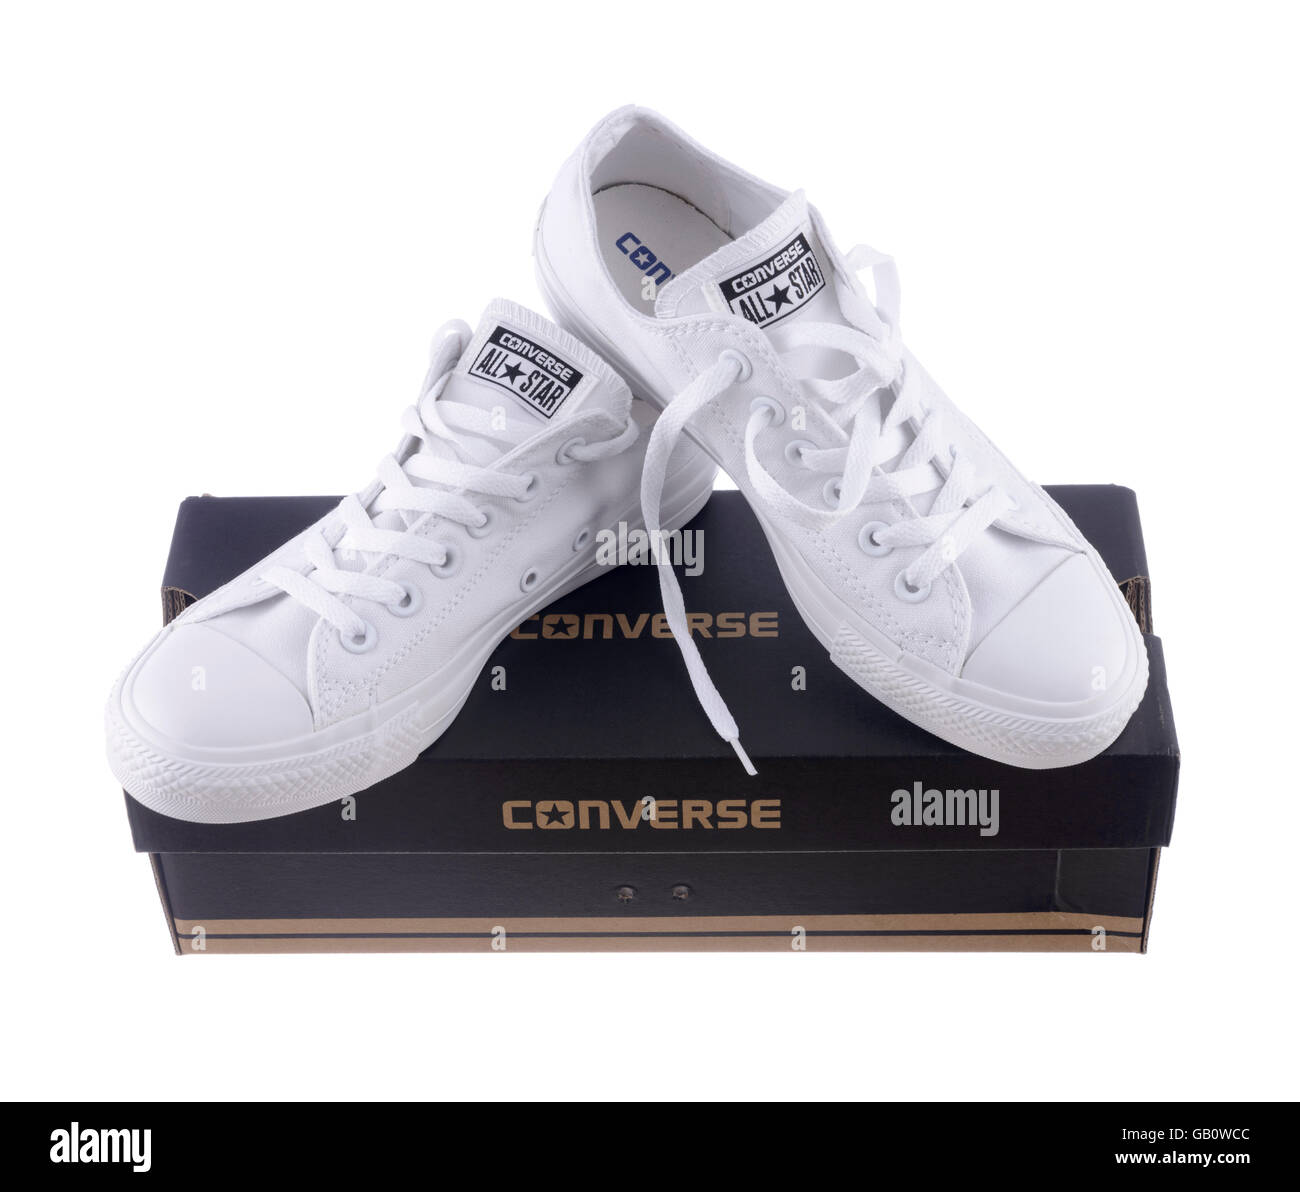 Pair of white Converse Chuck Taylor All